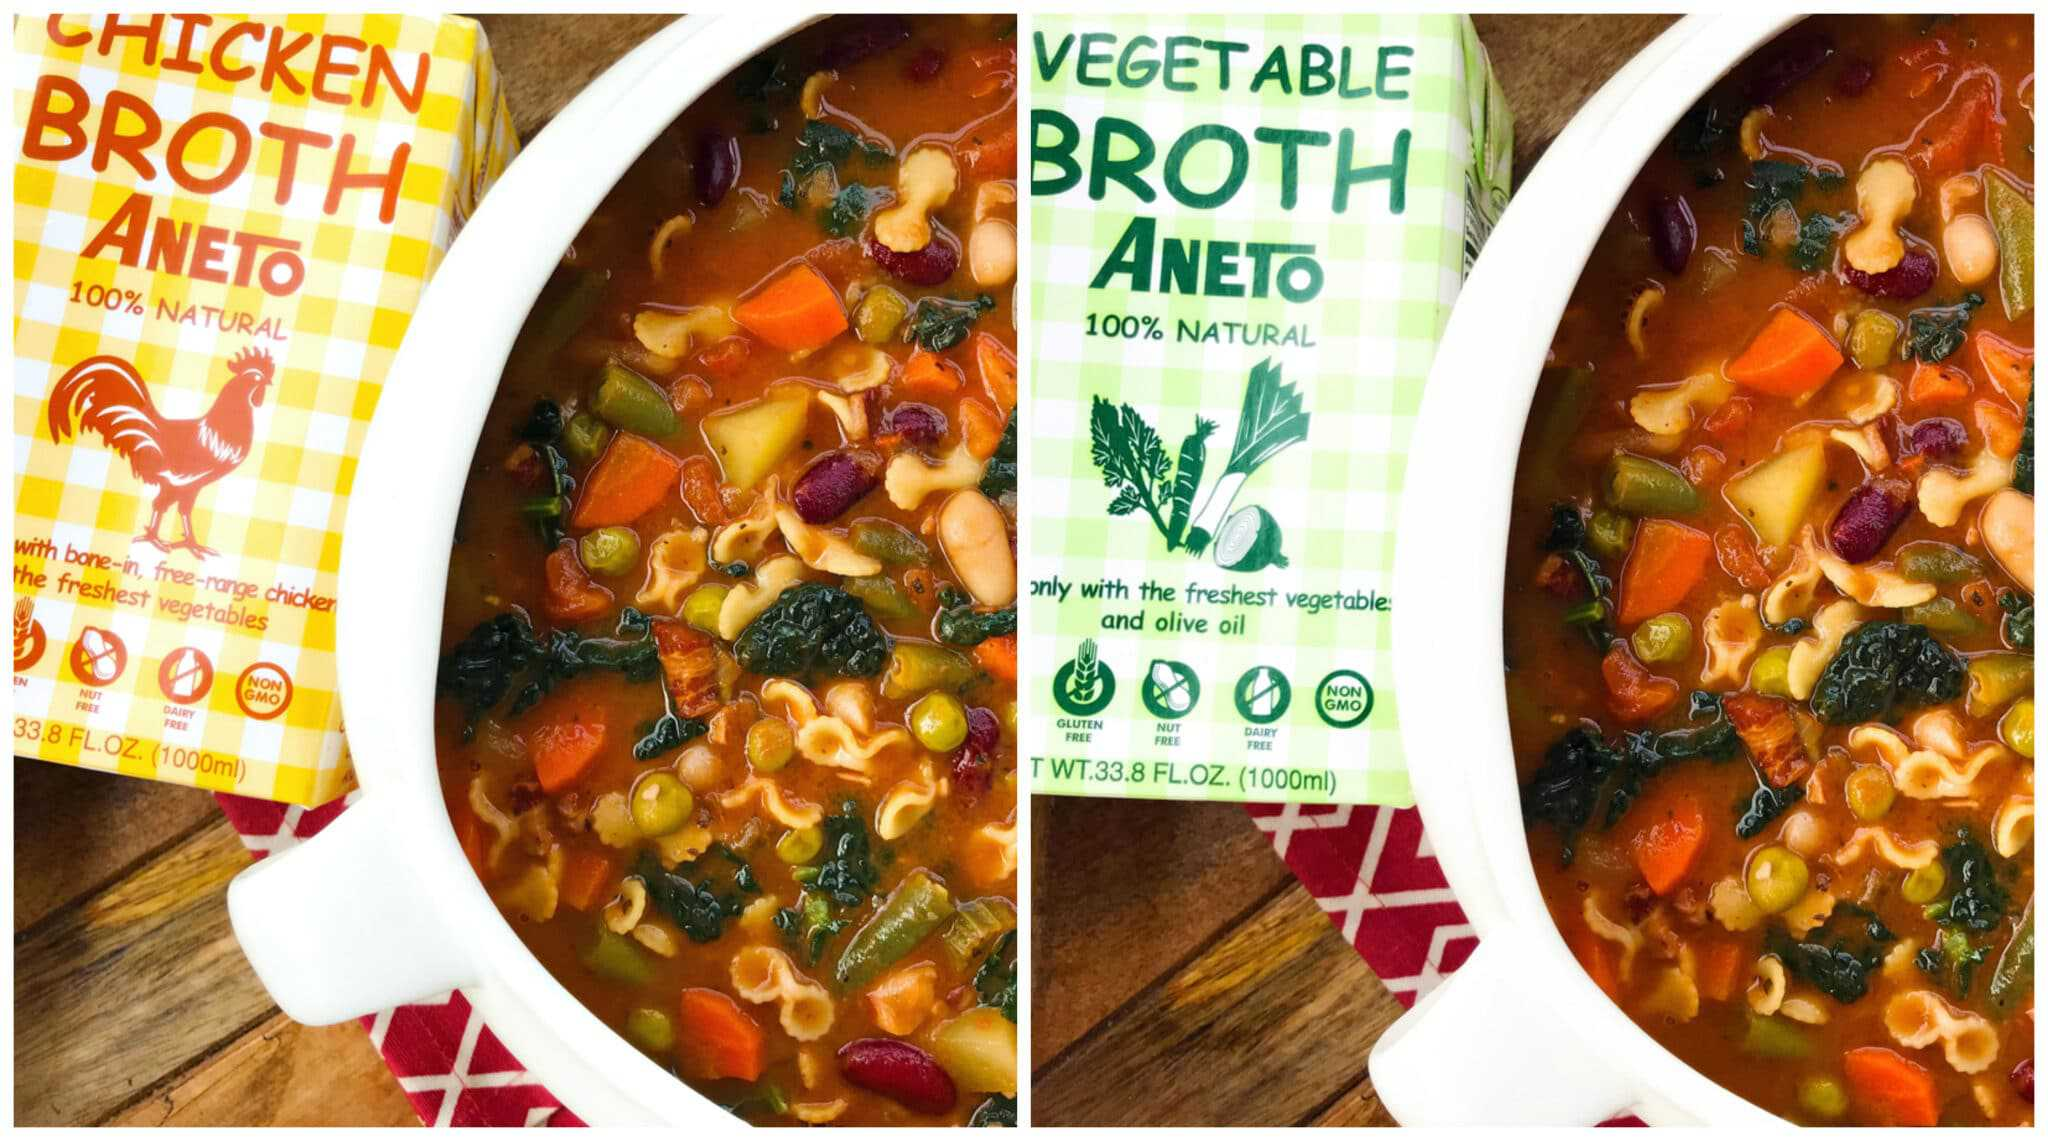 minestrone soup recipe traditional italian vegetables pasta beans potatoes vegetarian vegan gluten free aneto broth traditional authentic